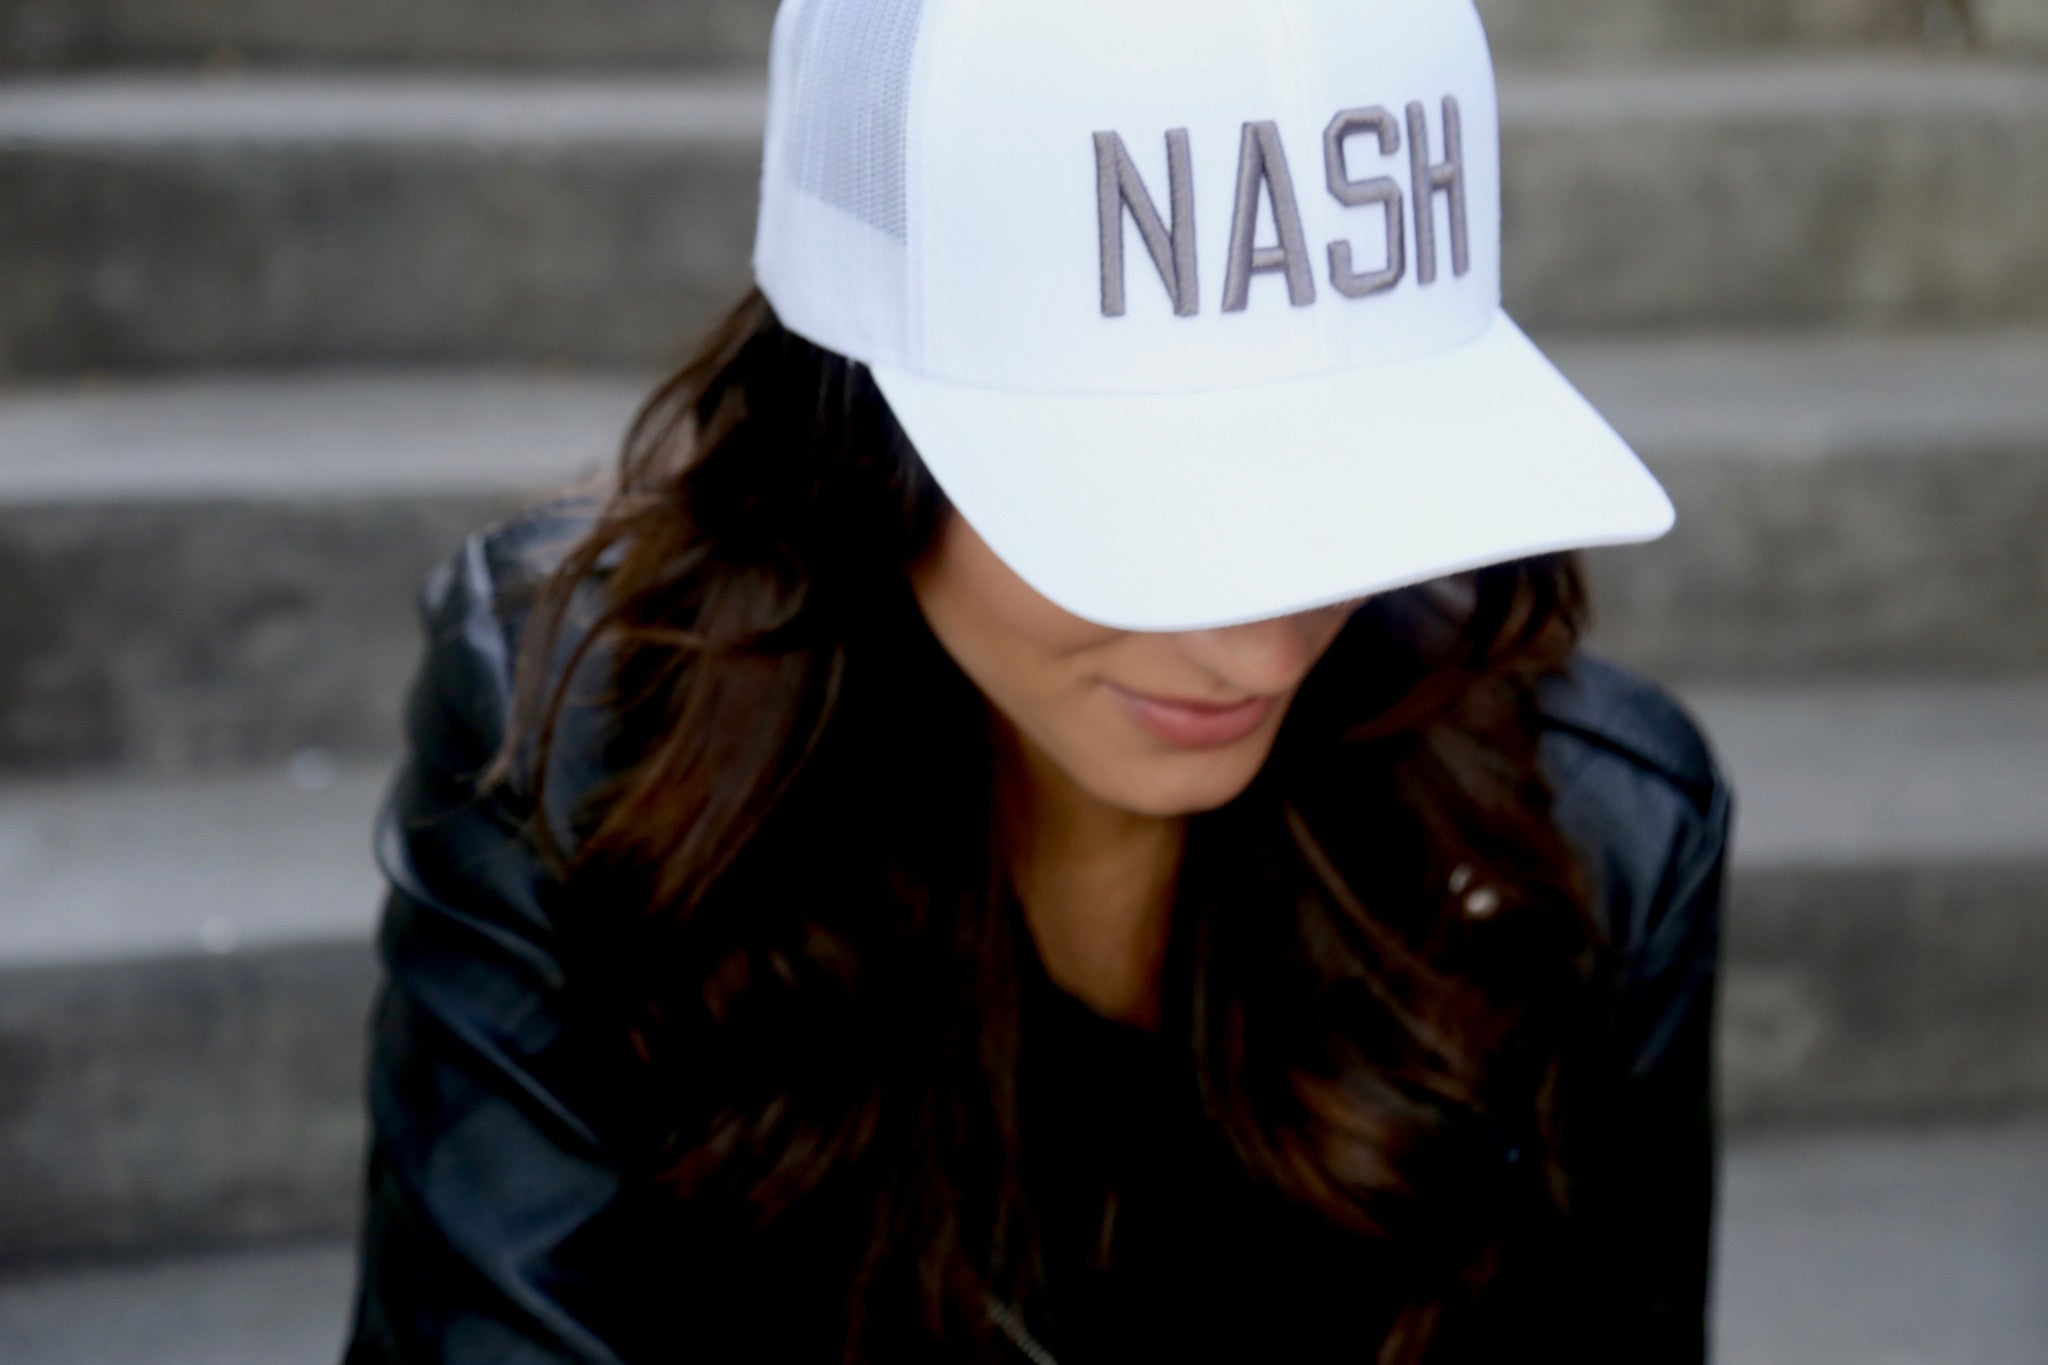 3 OBVIOUS SIGNS YOU NEED A NASH HAT